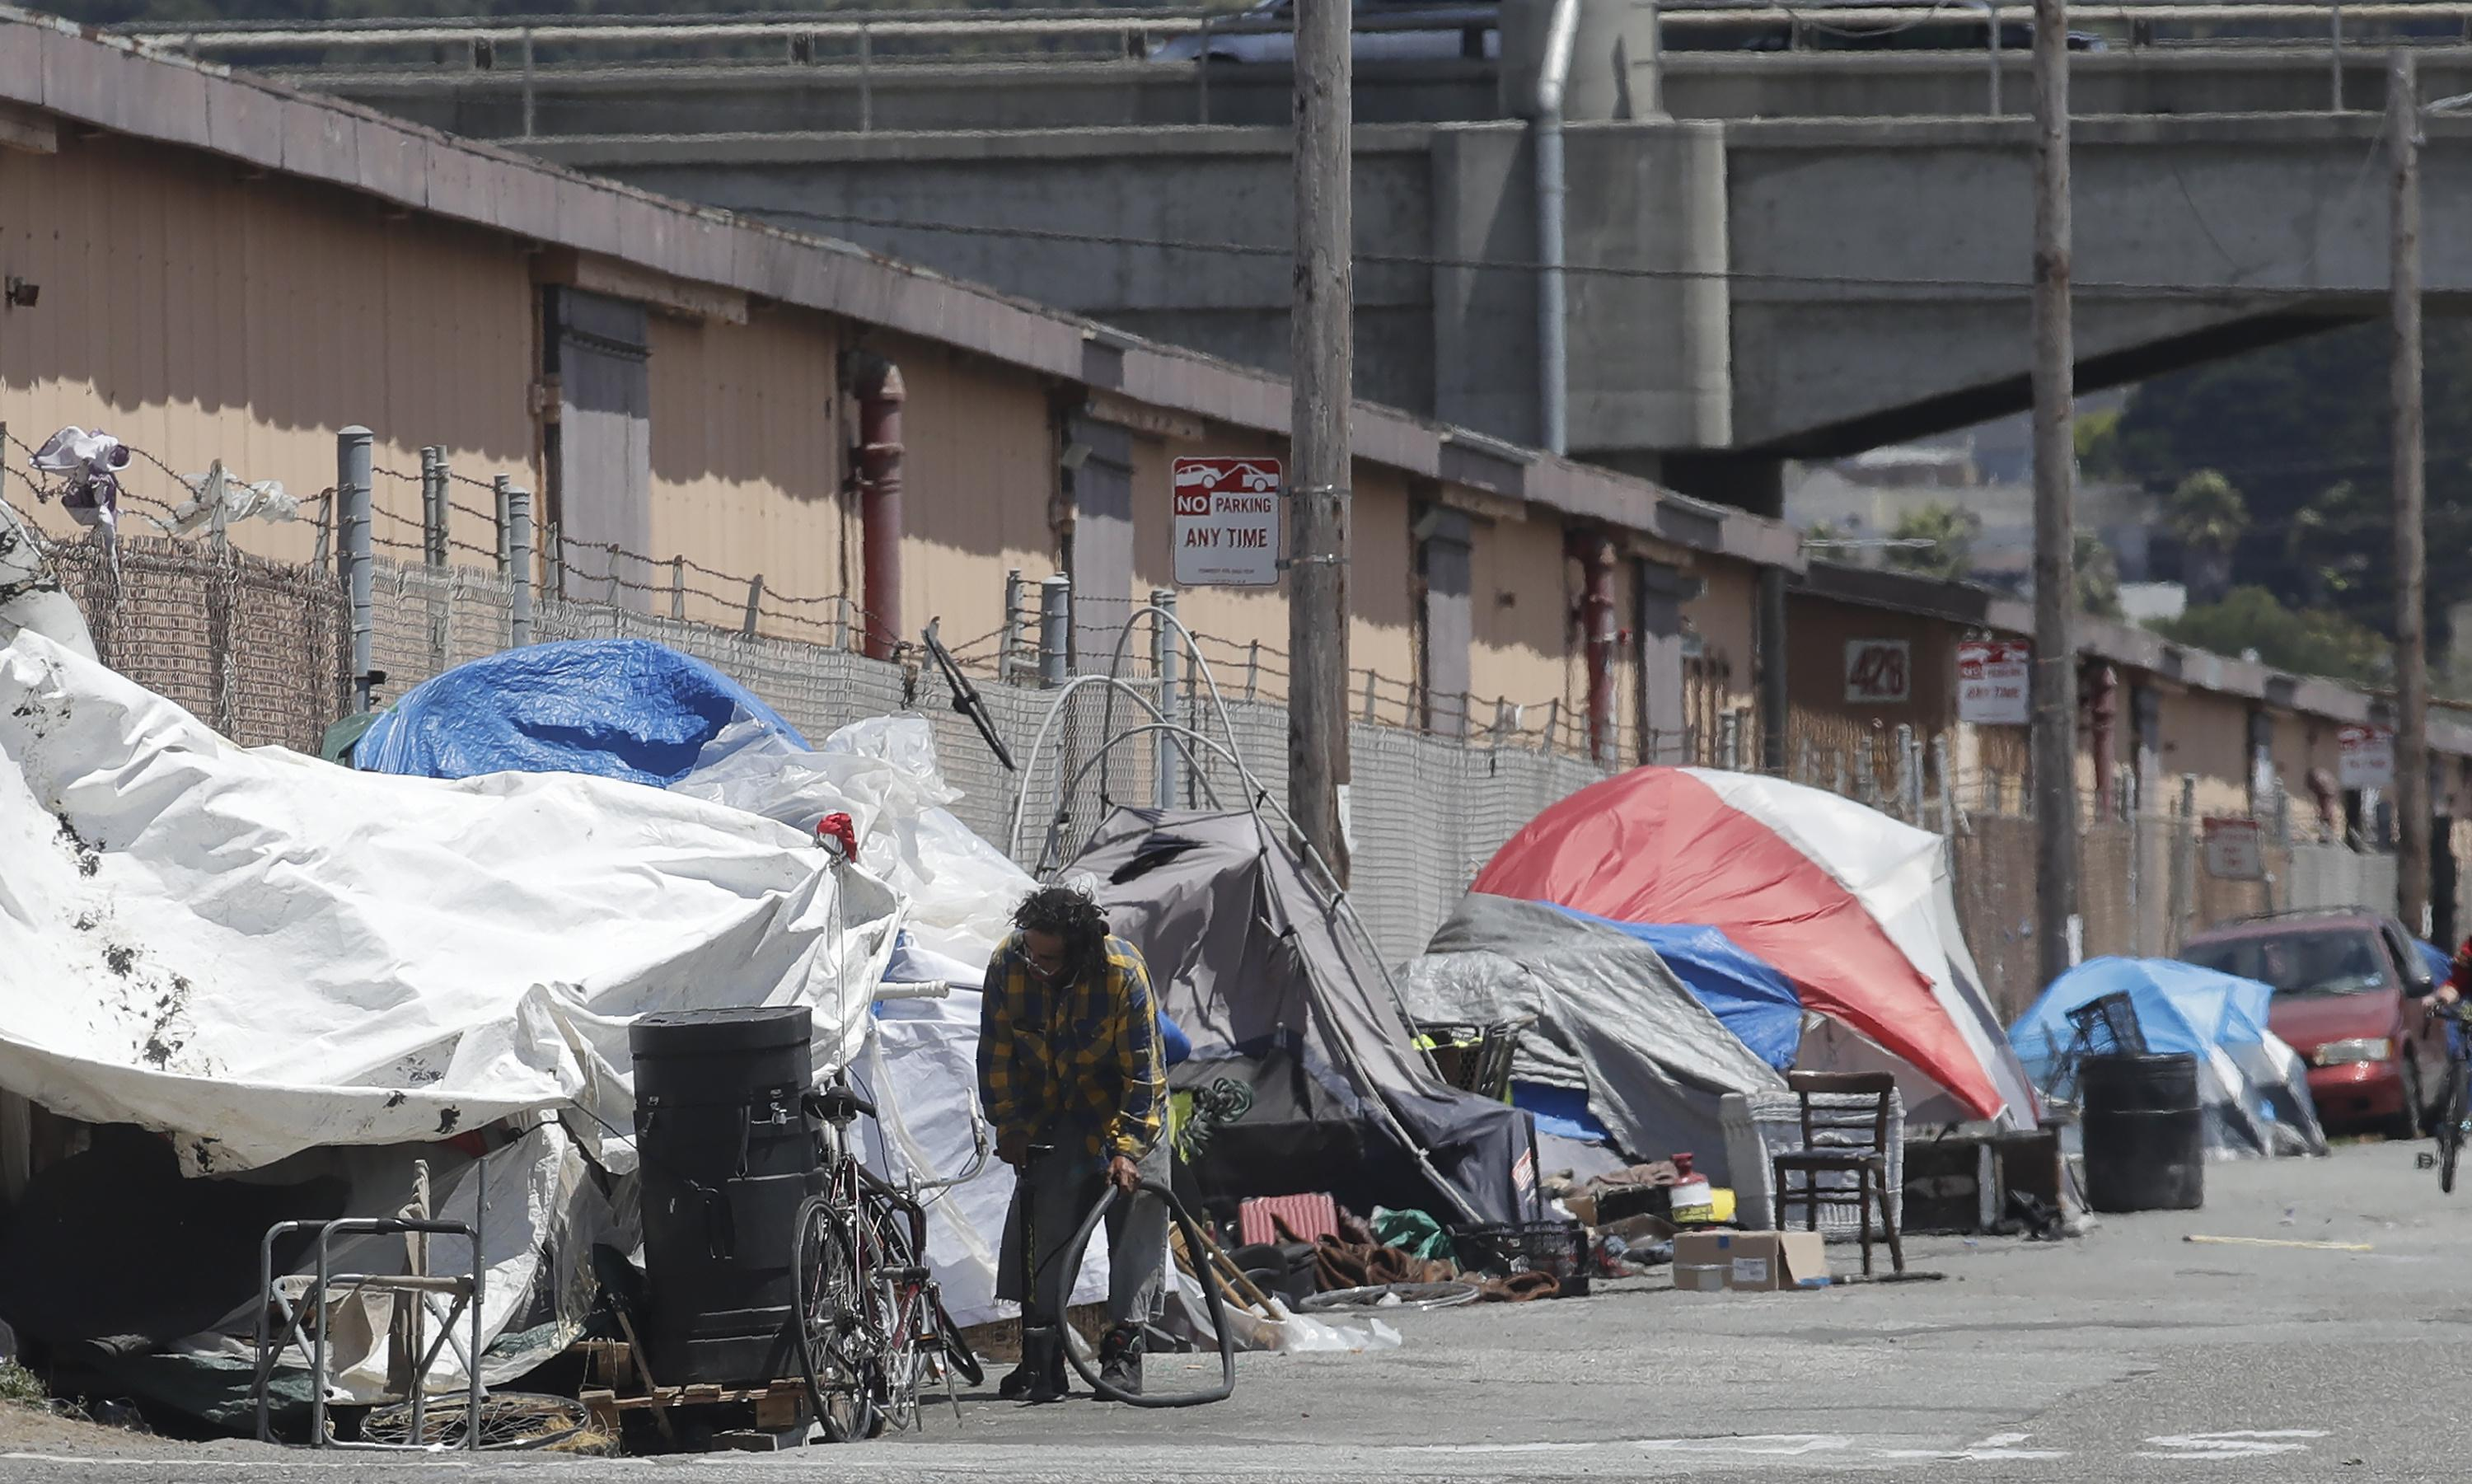 San Francisco: wealthy opponents of new shelter claim homeless are bad for environment